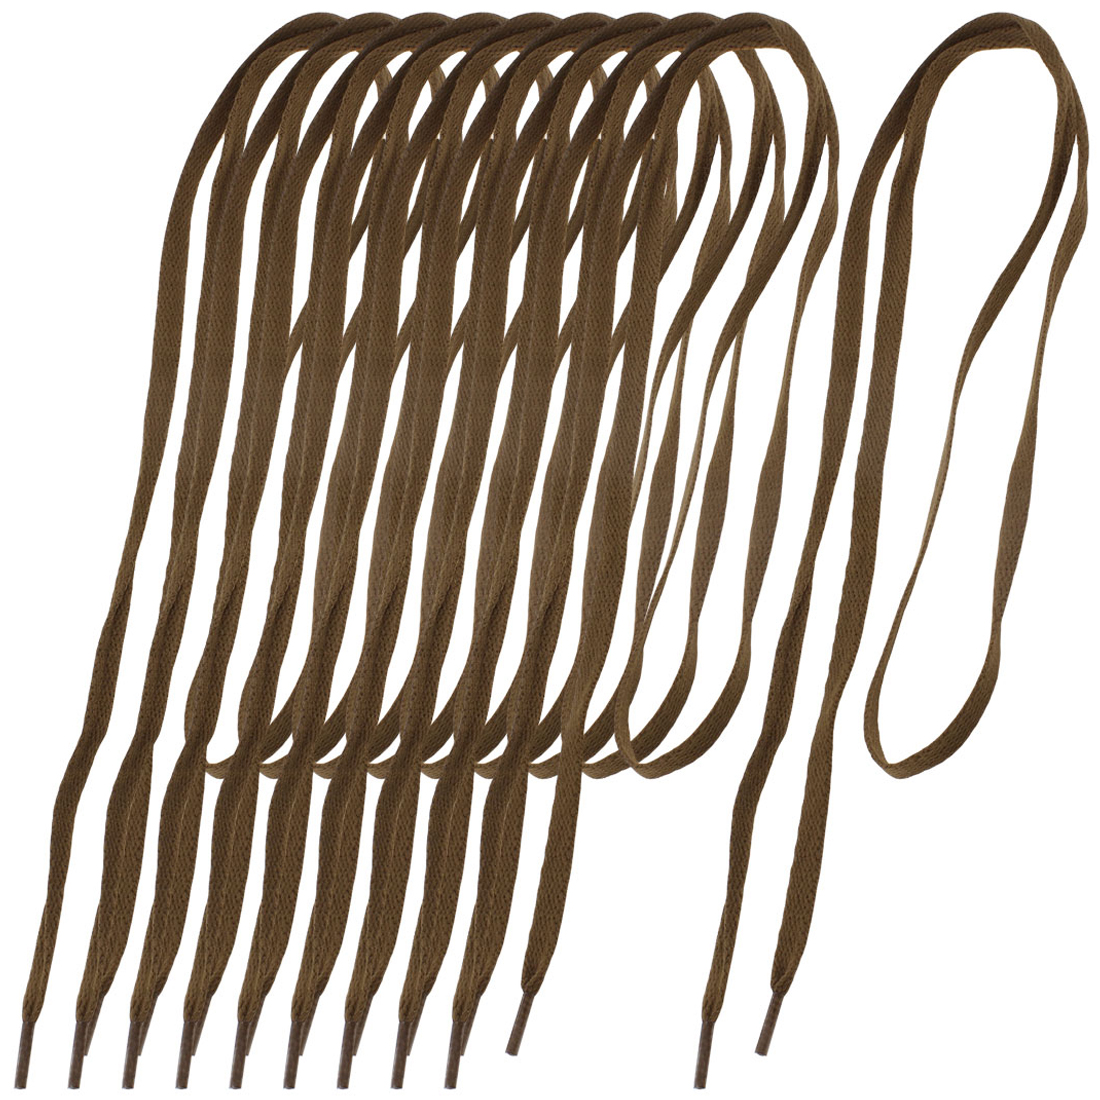 5 Pairs Unisex Plastic Tips Nylon Flat Shoelaces Shoestring Dark Brown